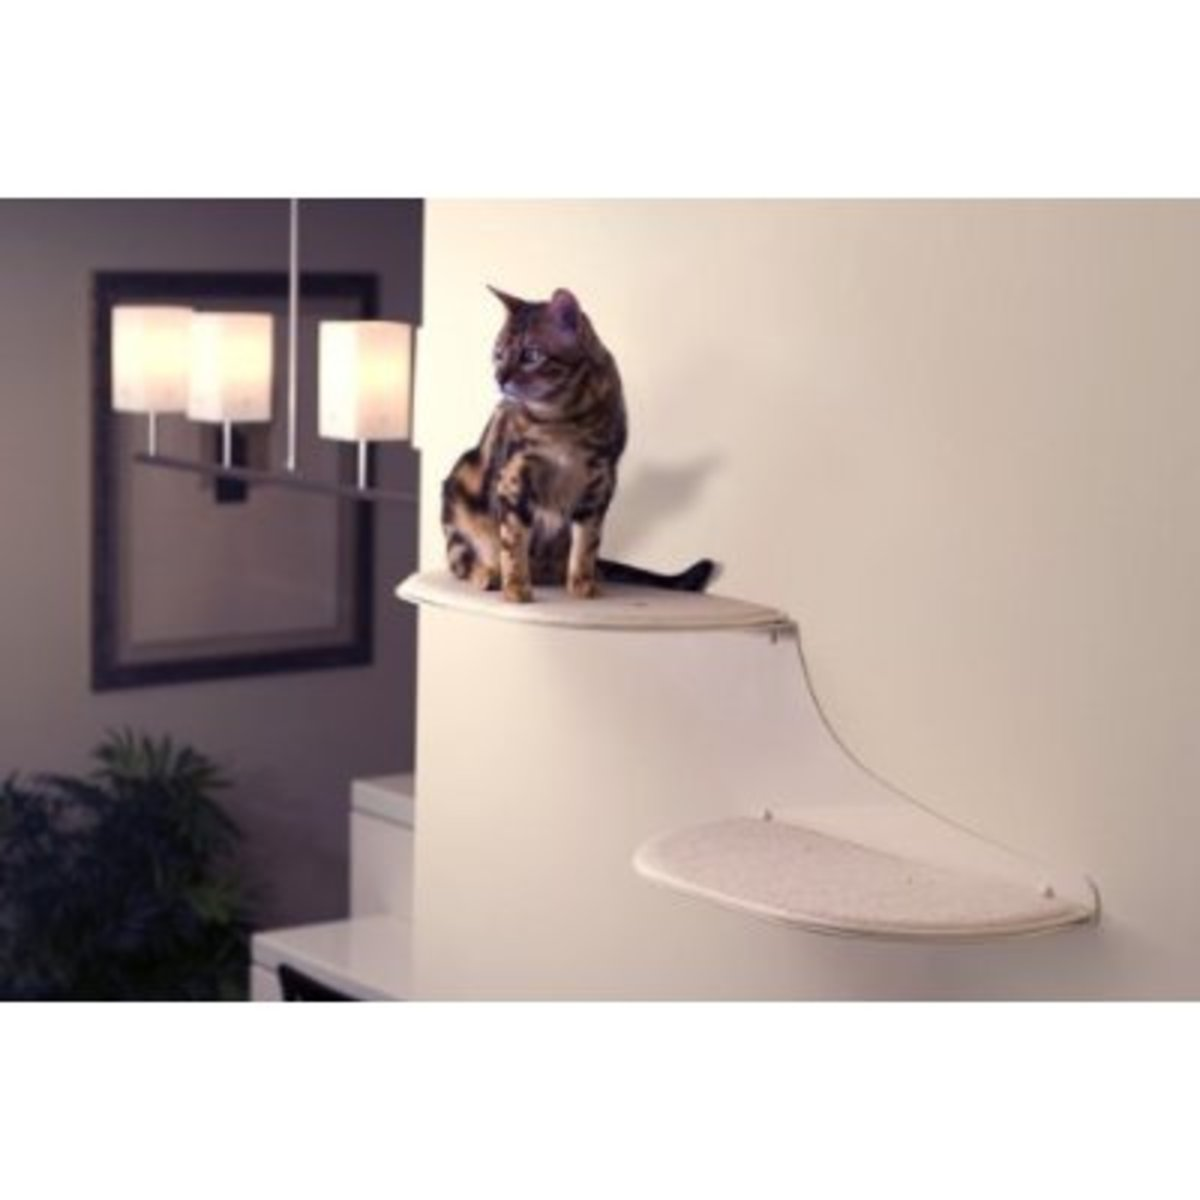 Cat shelves have become very modern and sleek!